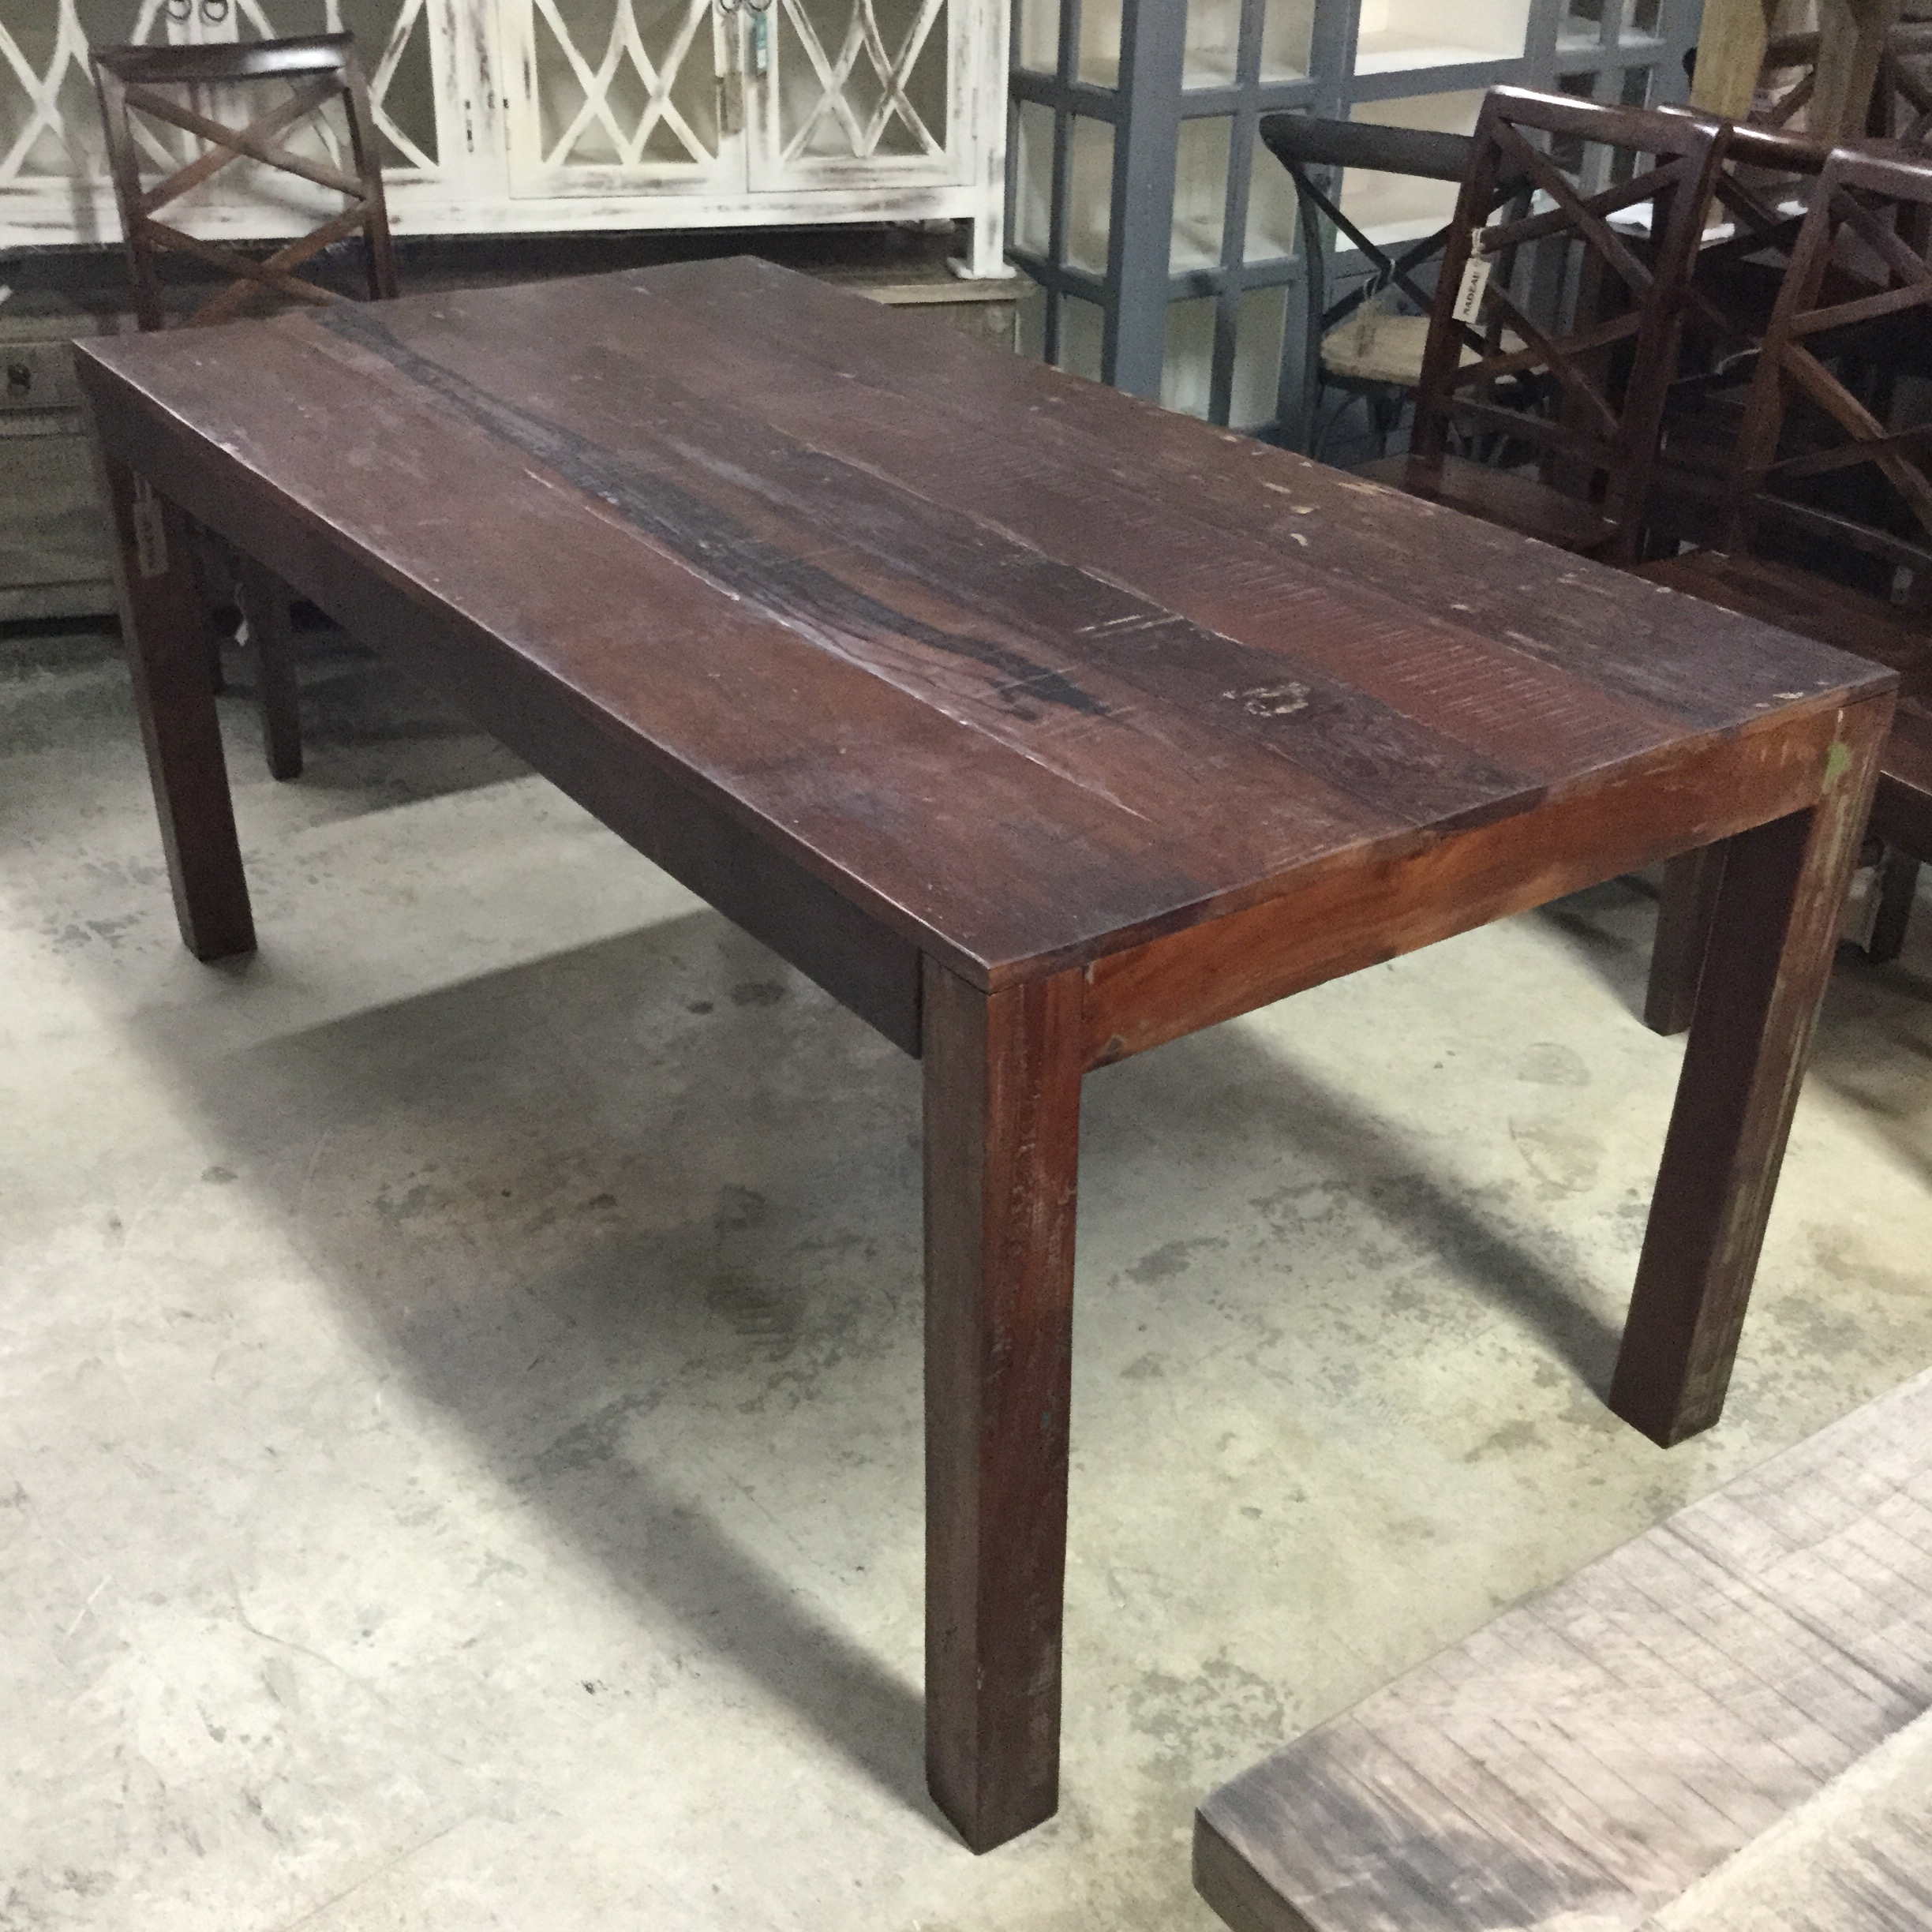 Dining Table Wood: Reclaimed Wood Dining Table